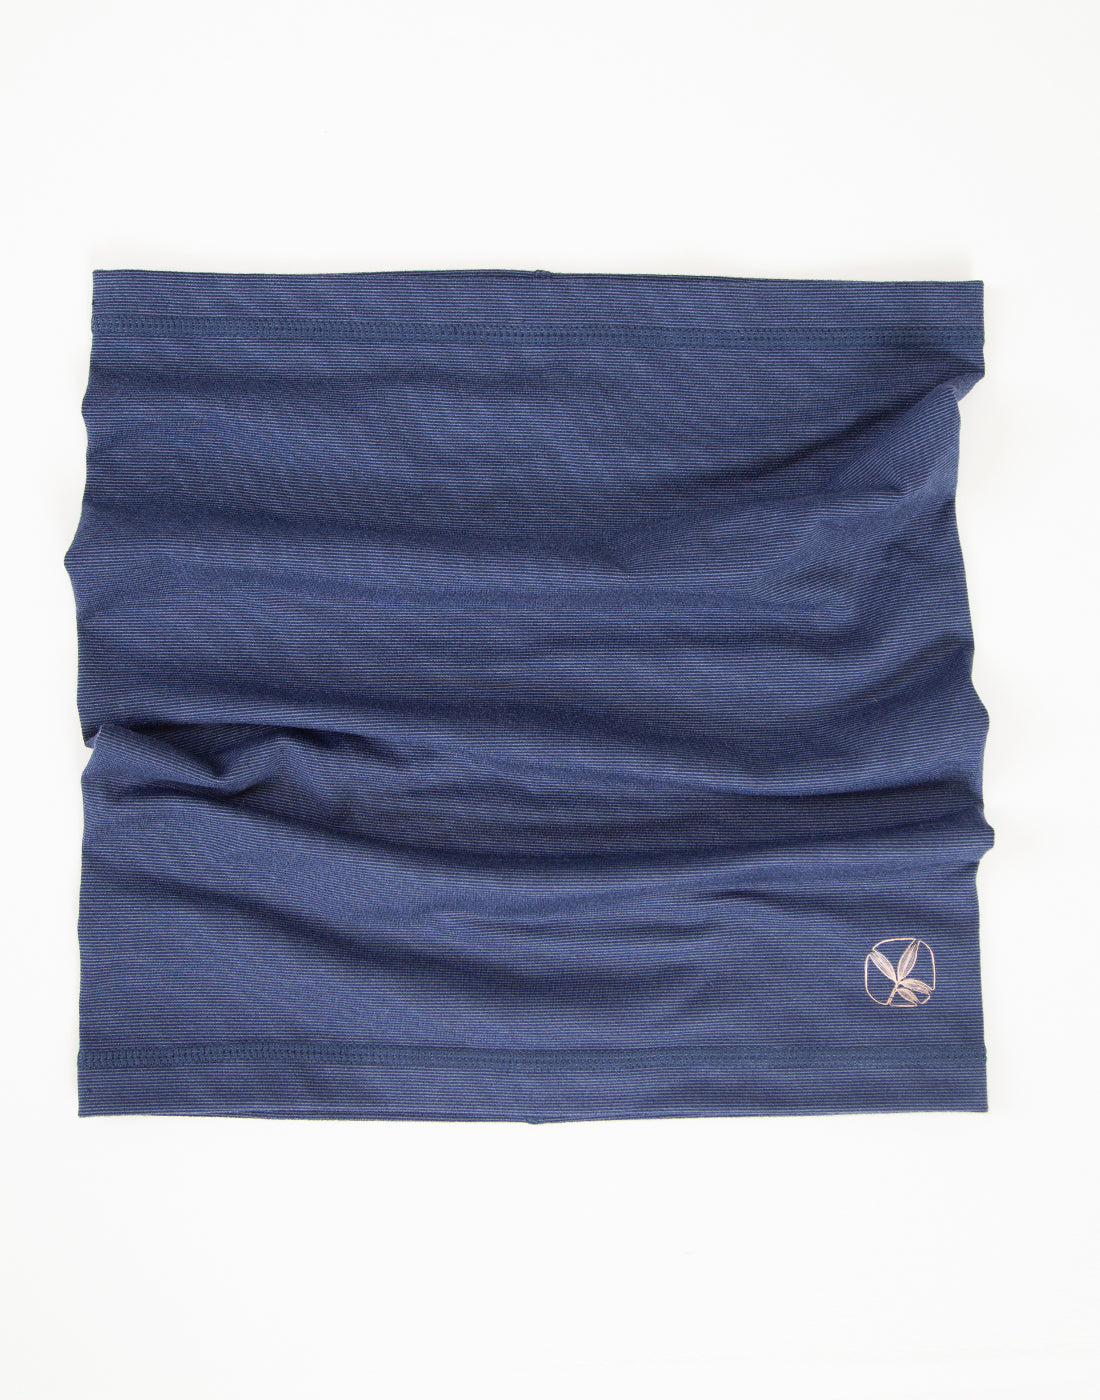 Talora Neckerchief: Navy